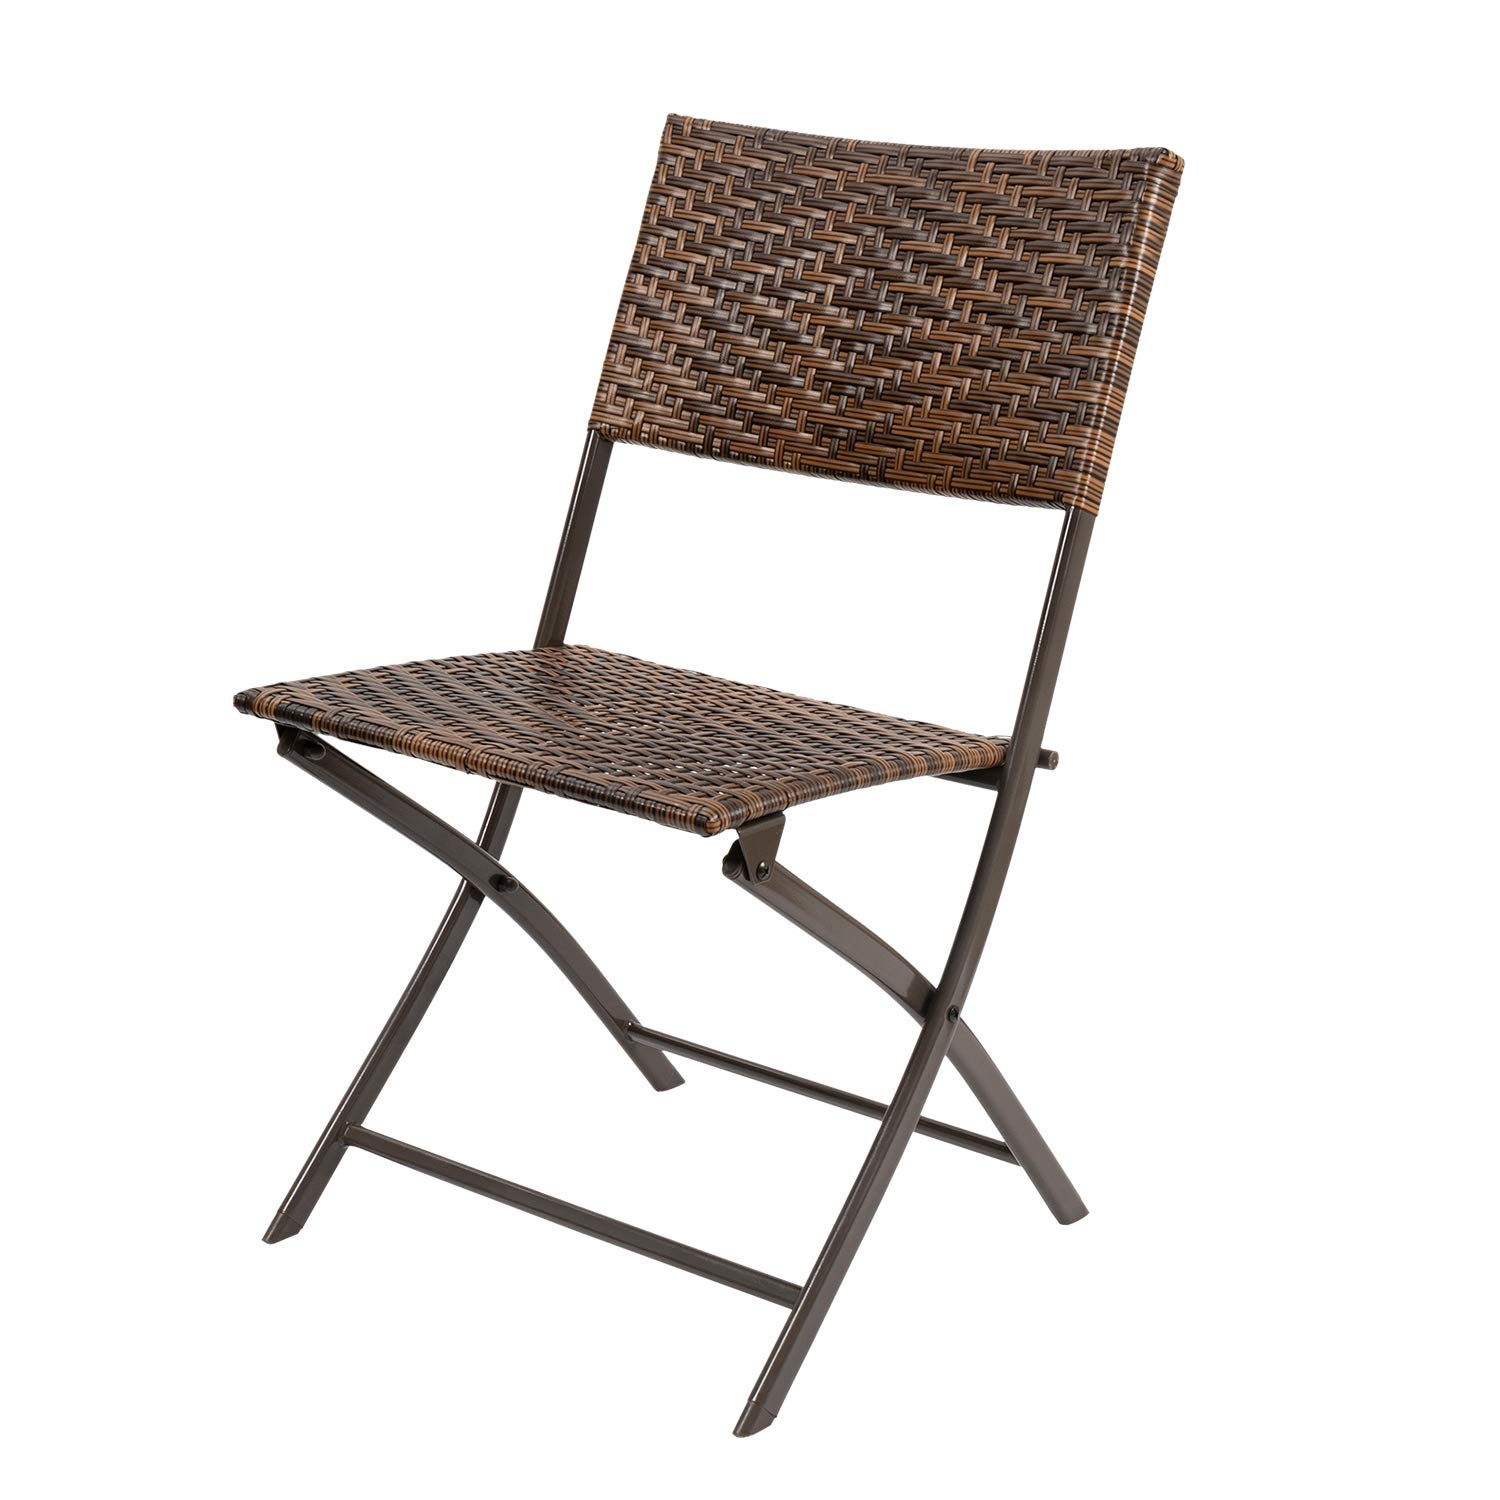 Devoko Patio Folding Deck Sling Back Chair Camping Garden Pool Beach Using Chairs Space Saving Set of 1 (Brown)